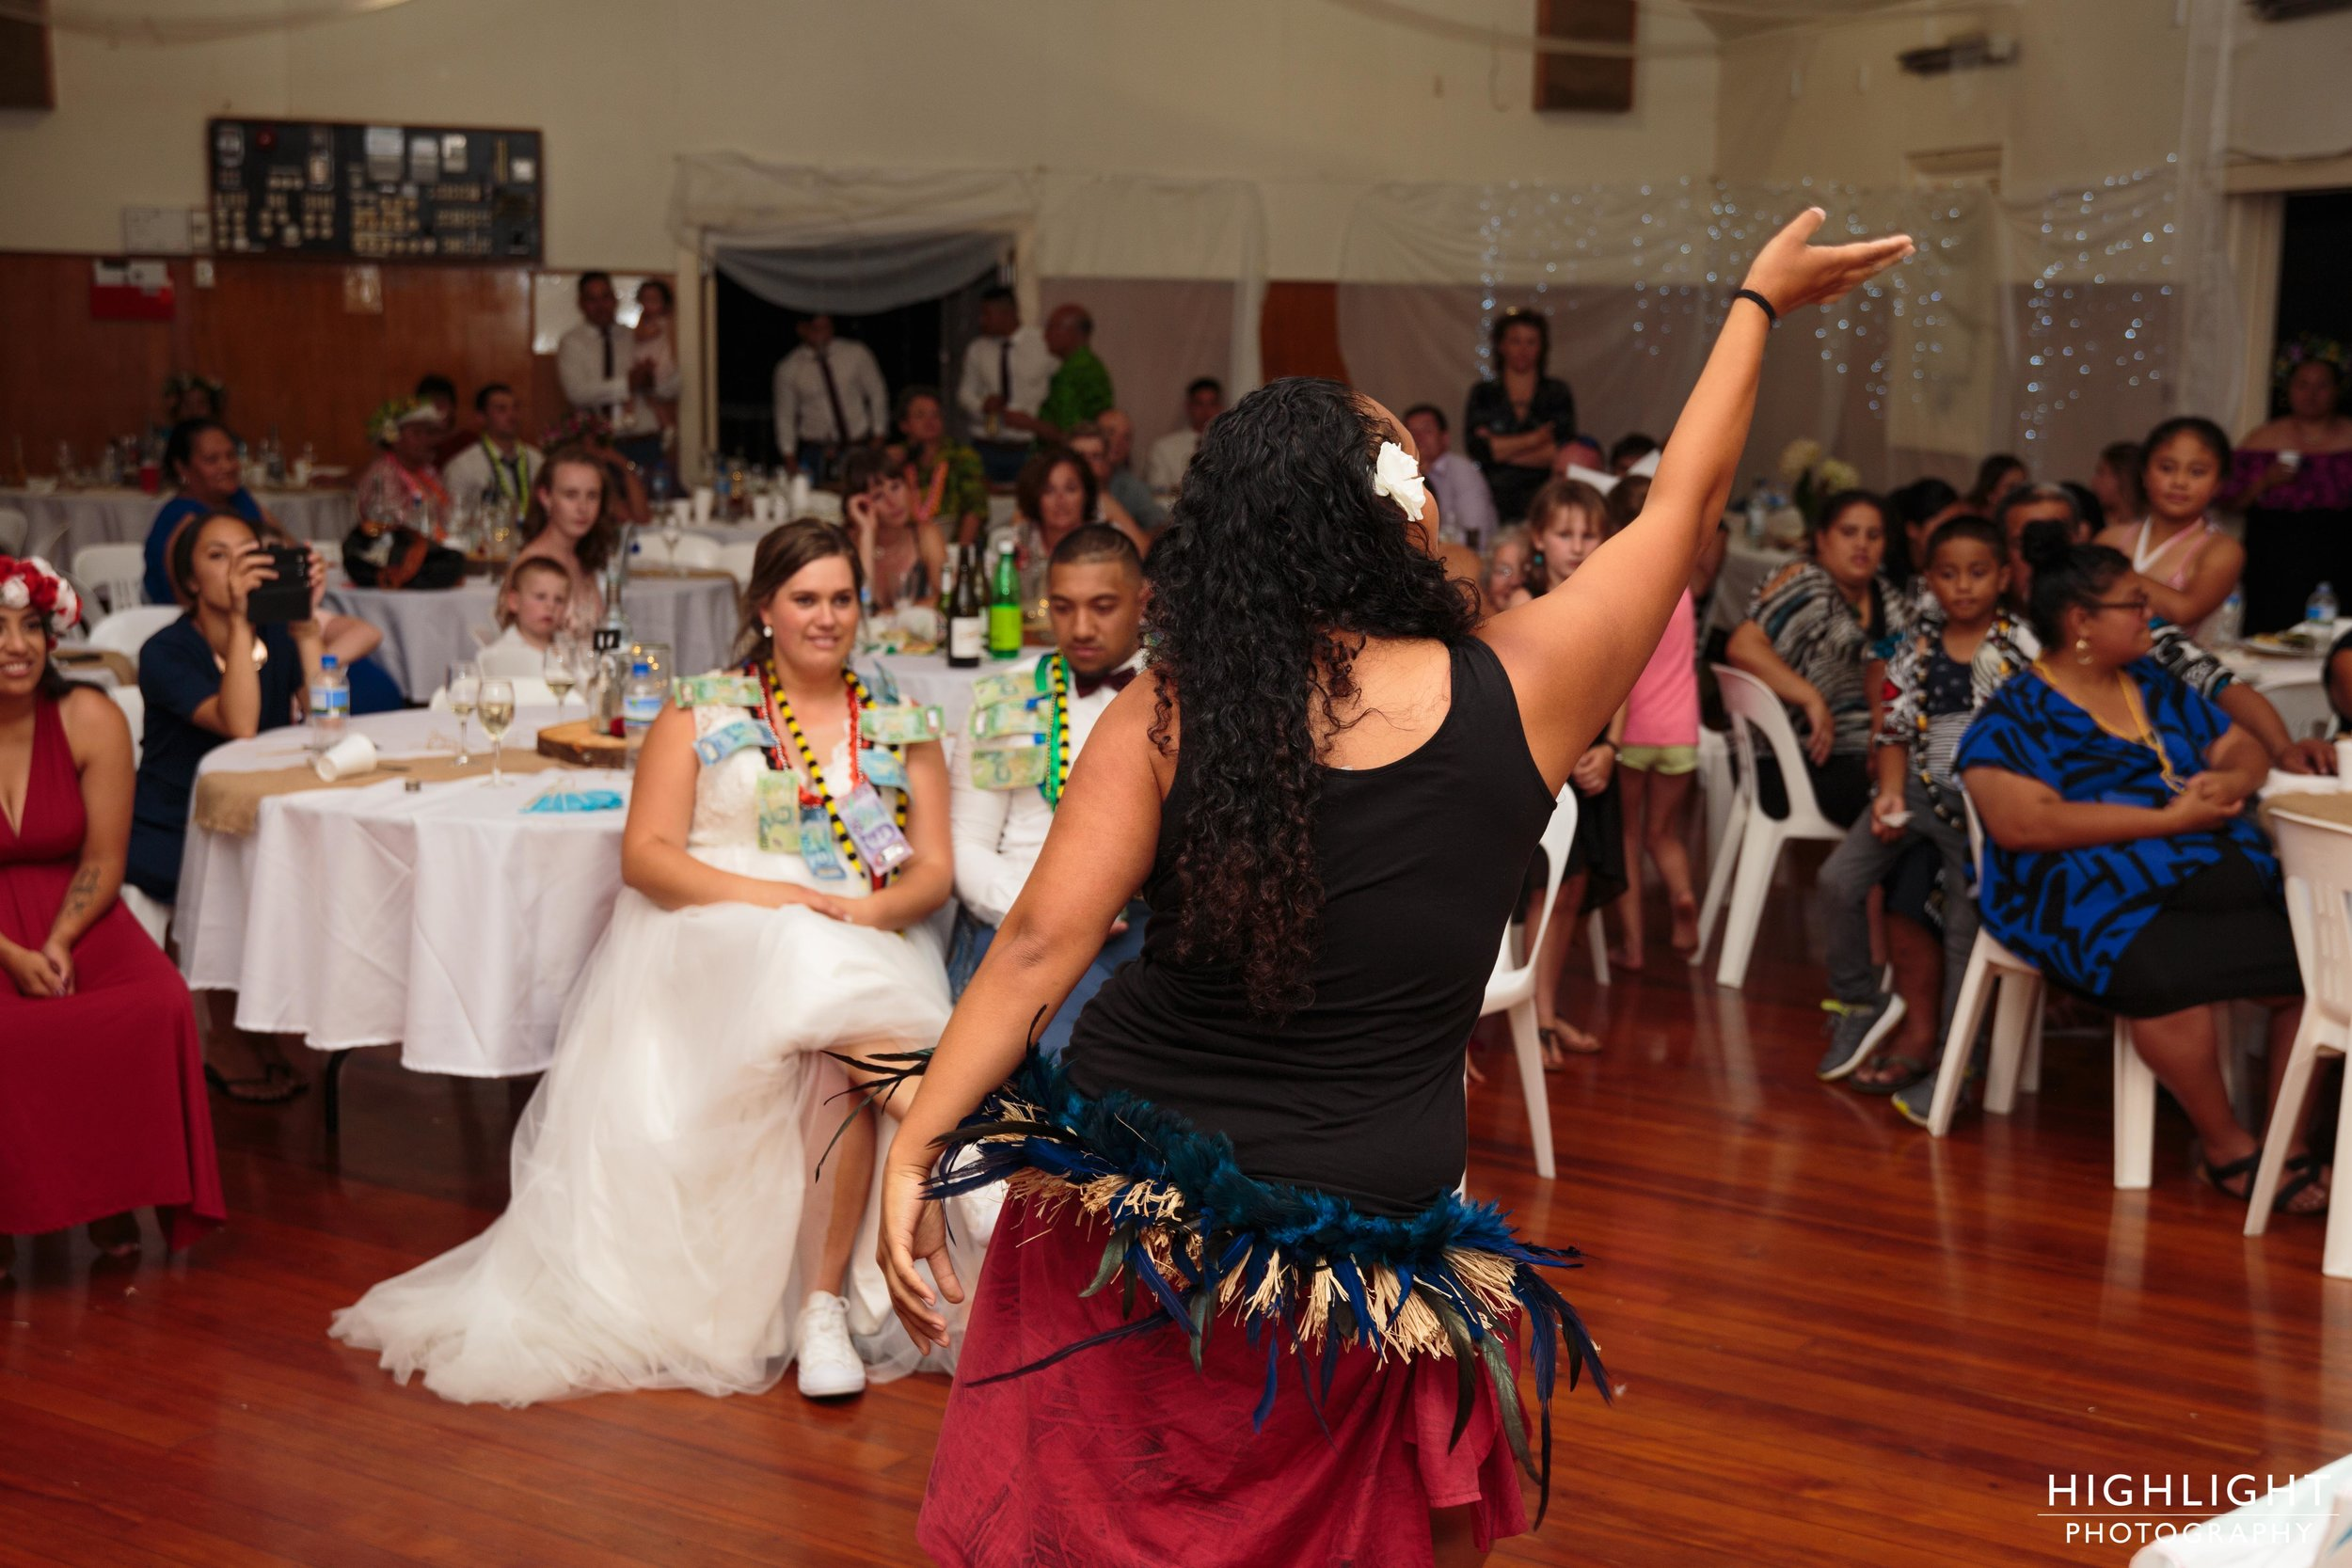 highlight-wedding-photography-new-zealand-palmerston-north-bv-161.jpg